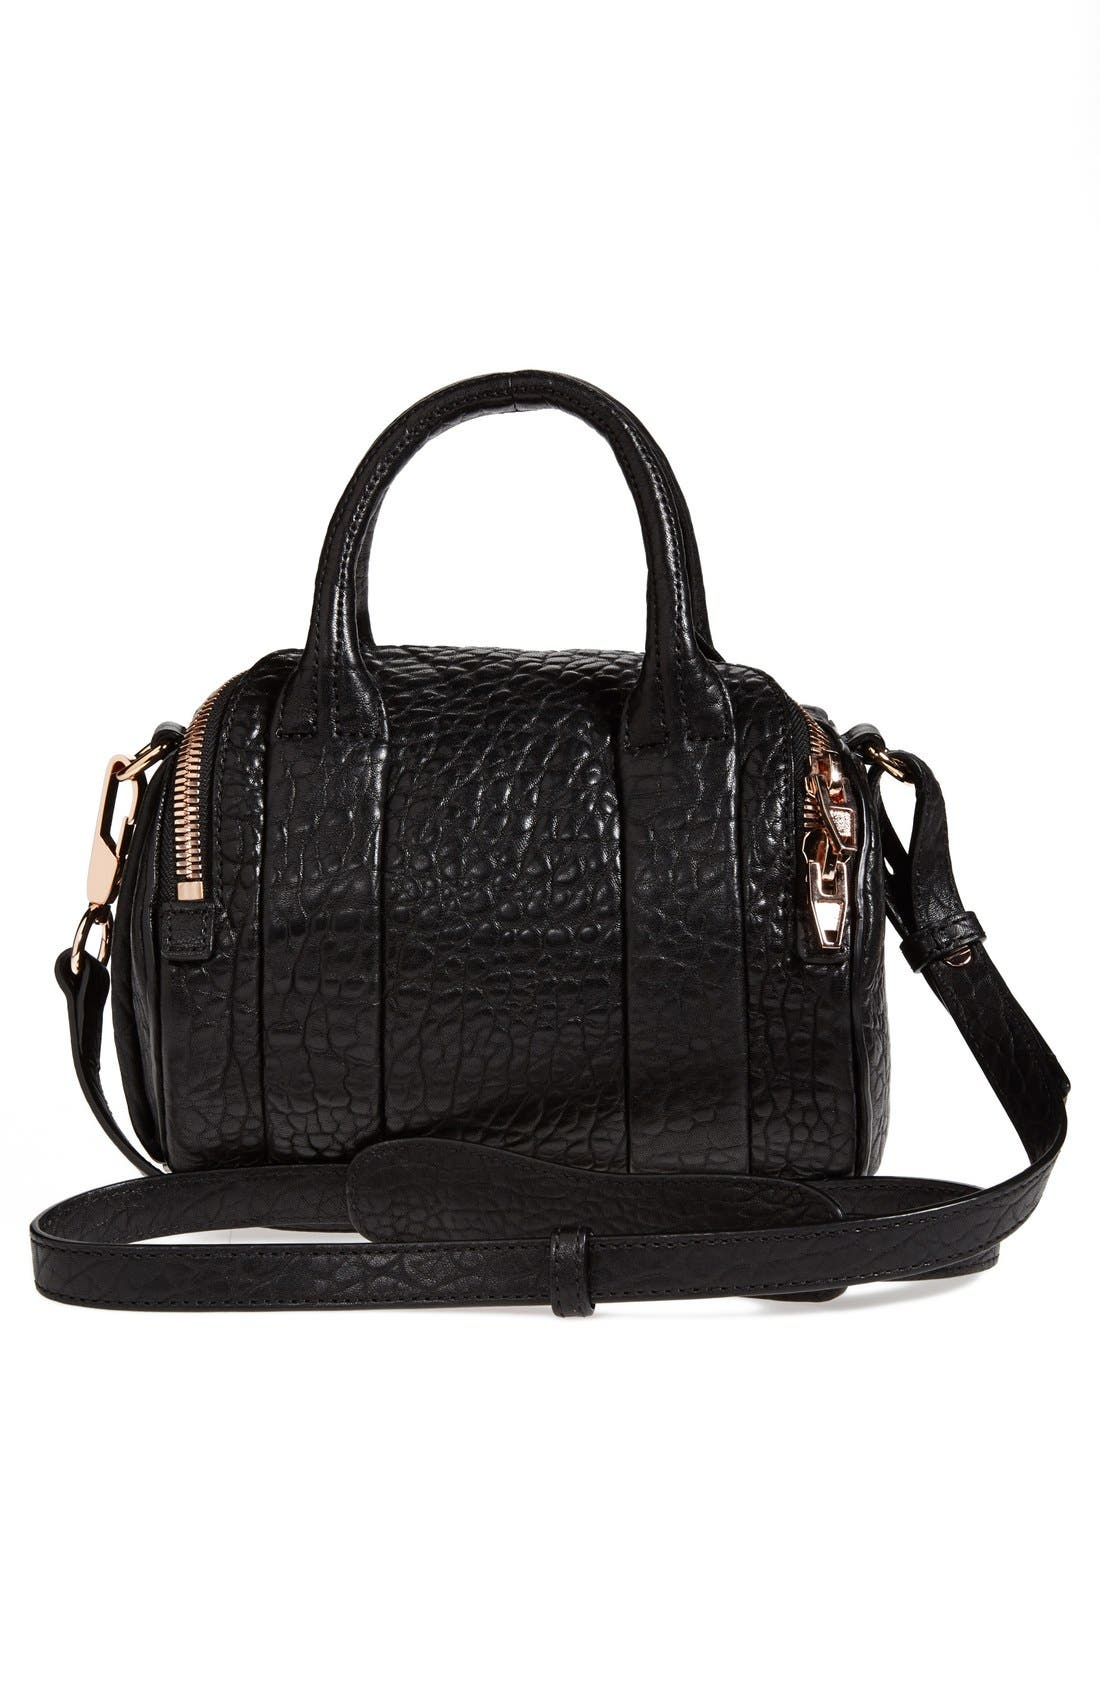 ALEXANDER WANG,                             'Mini Rockie - Rose Gold' Leather Crossbody Satchel,                             Alternate thumbnail 4, color,                             BLACK